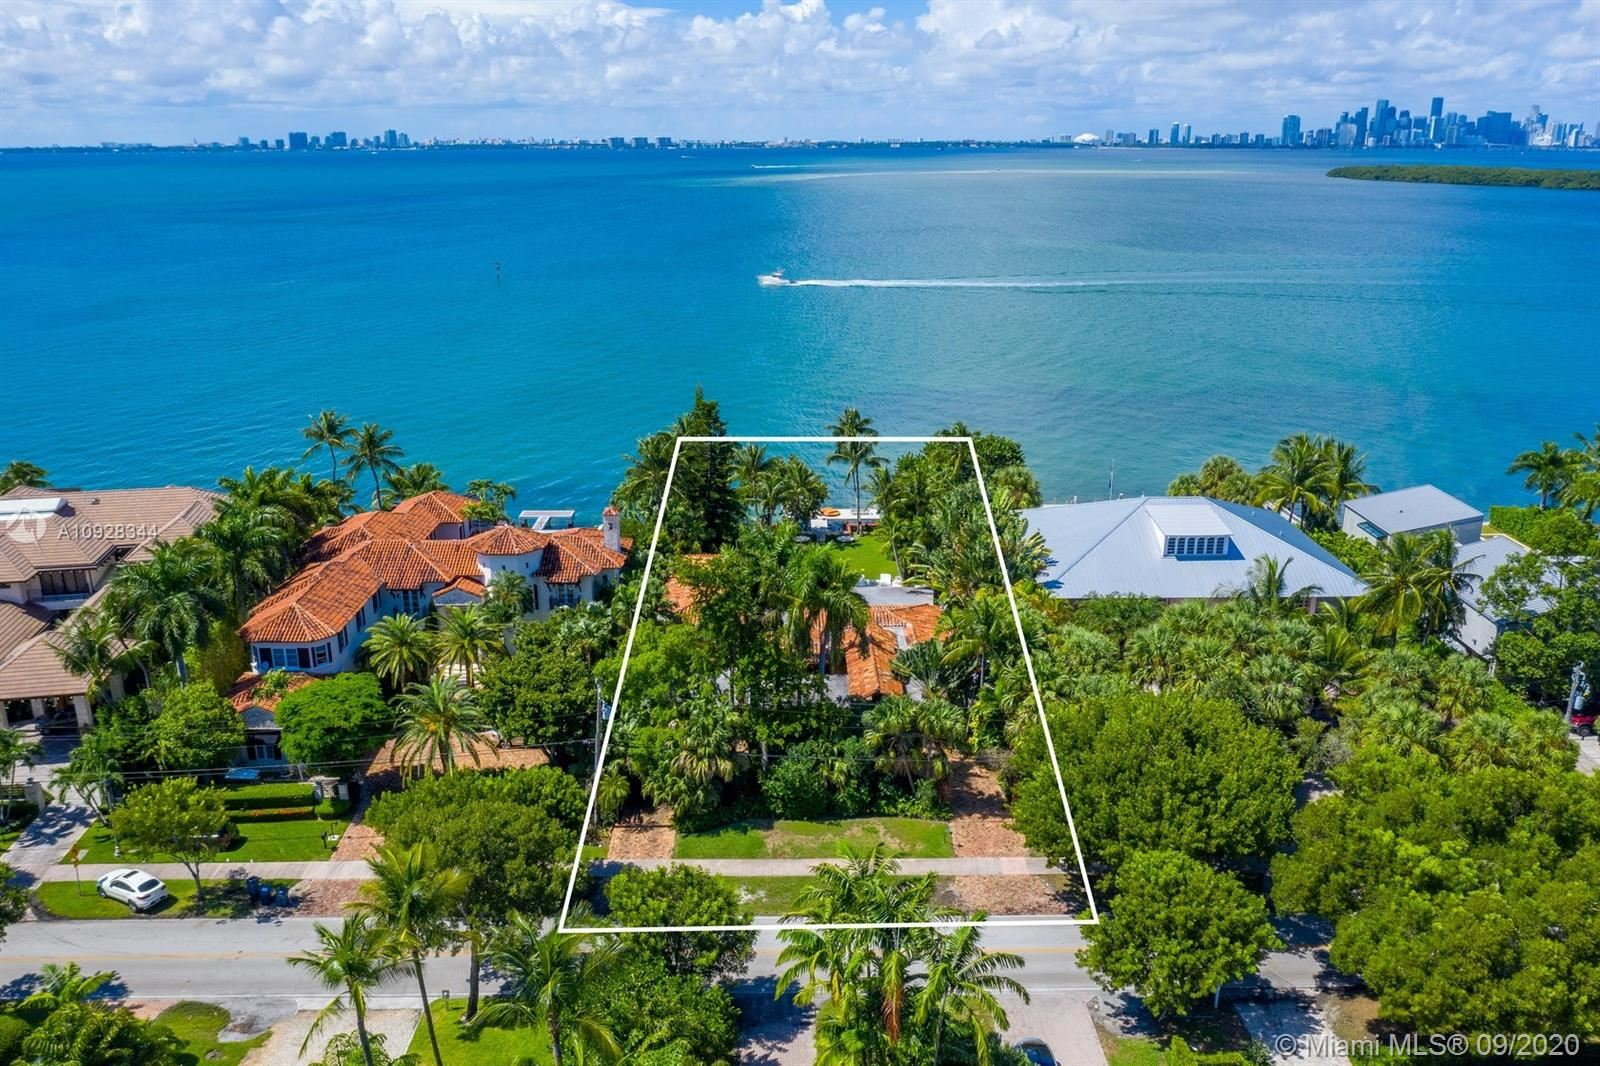 Photo of 290 Harbor Dr, Key Biscayne, FL 33149 (MLS # A10928344)